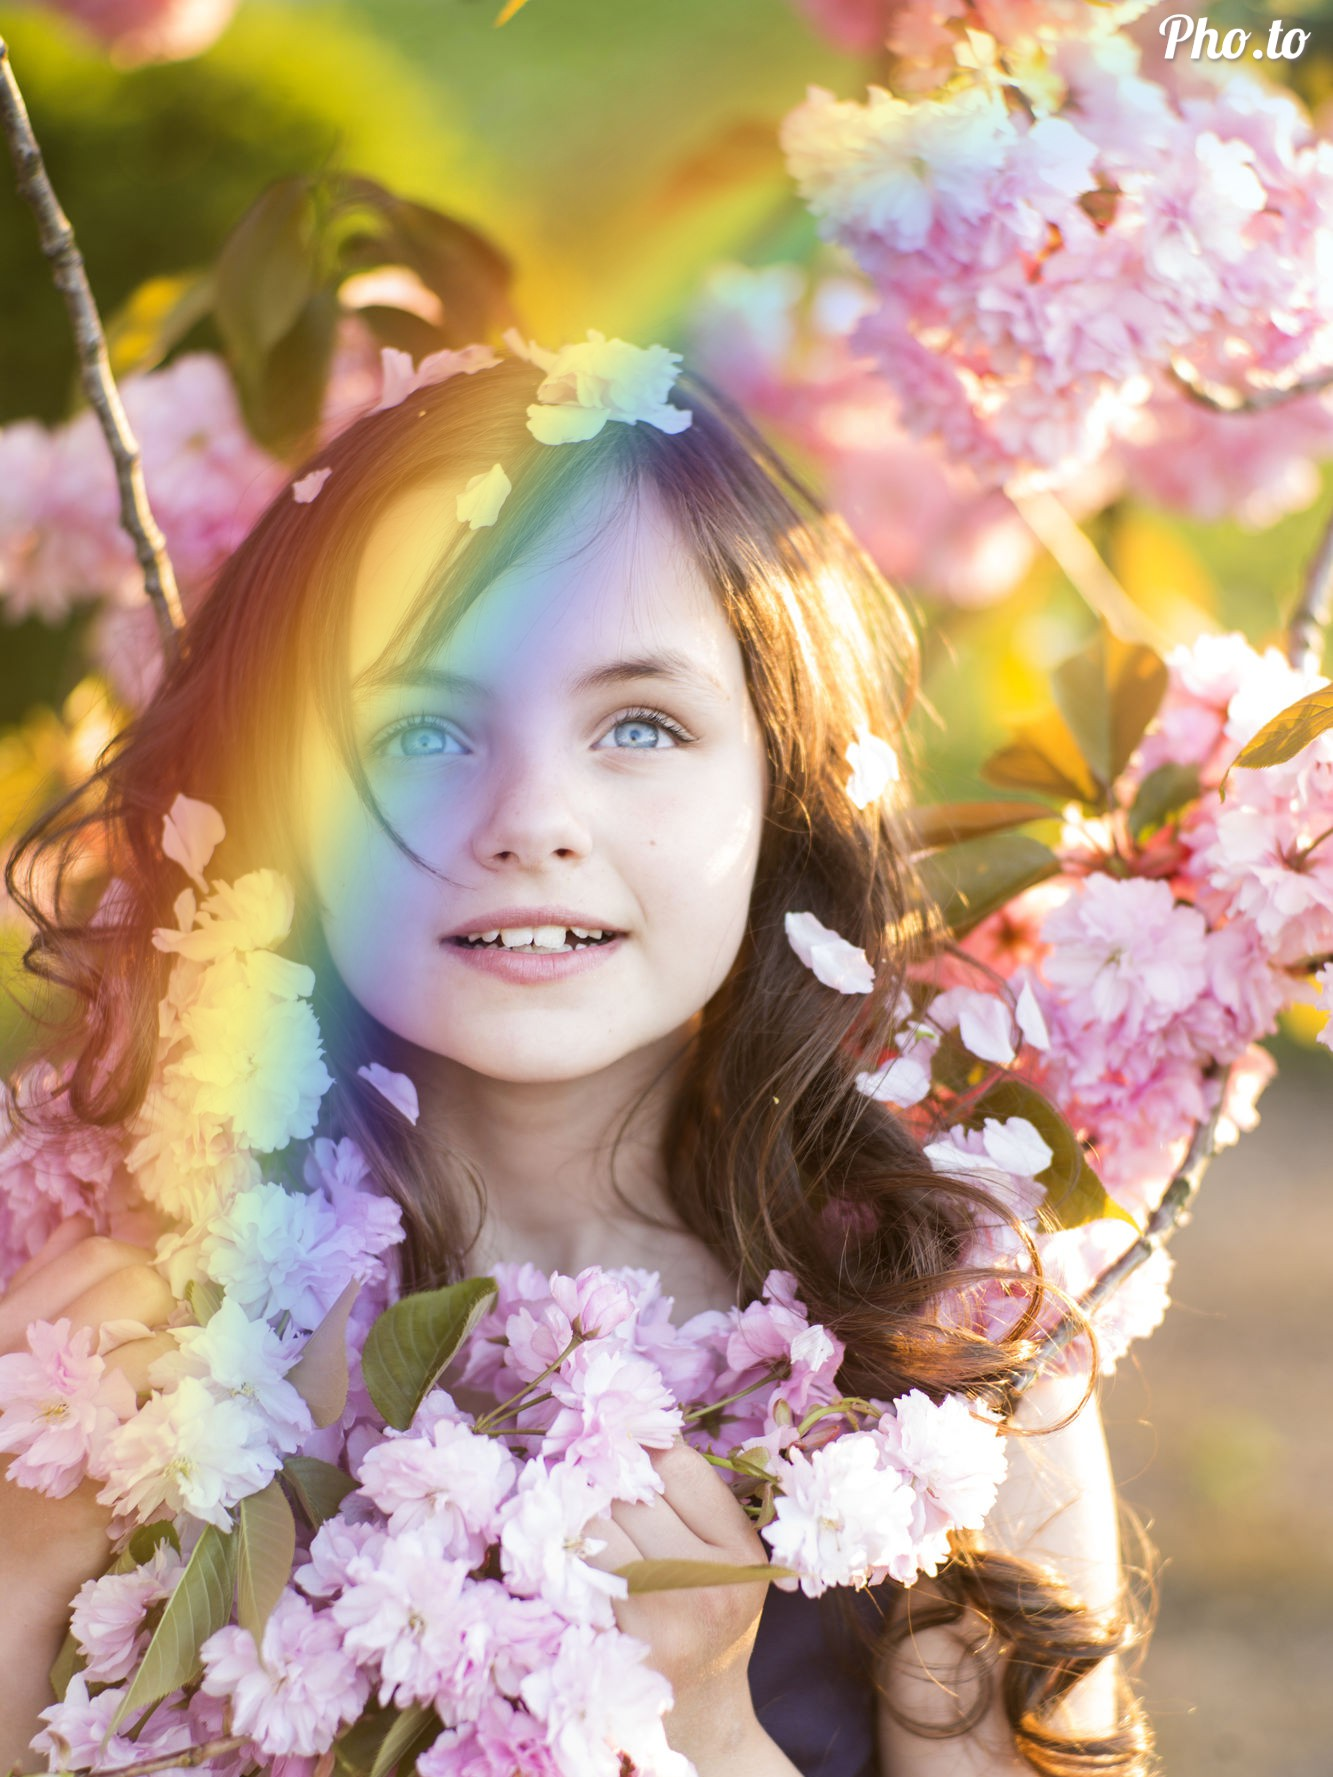 Rainbow filter added to a photo of a cute girl standing in flowers.